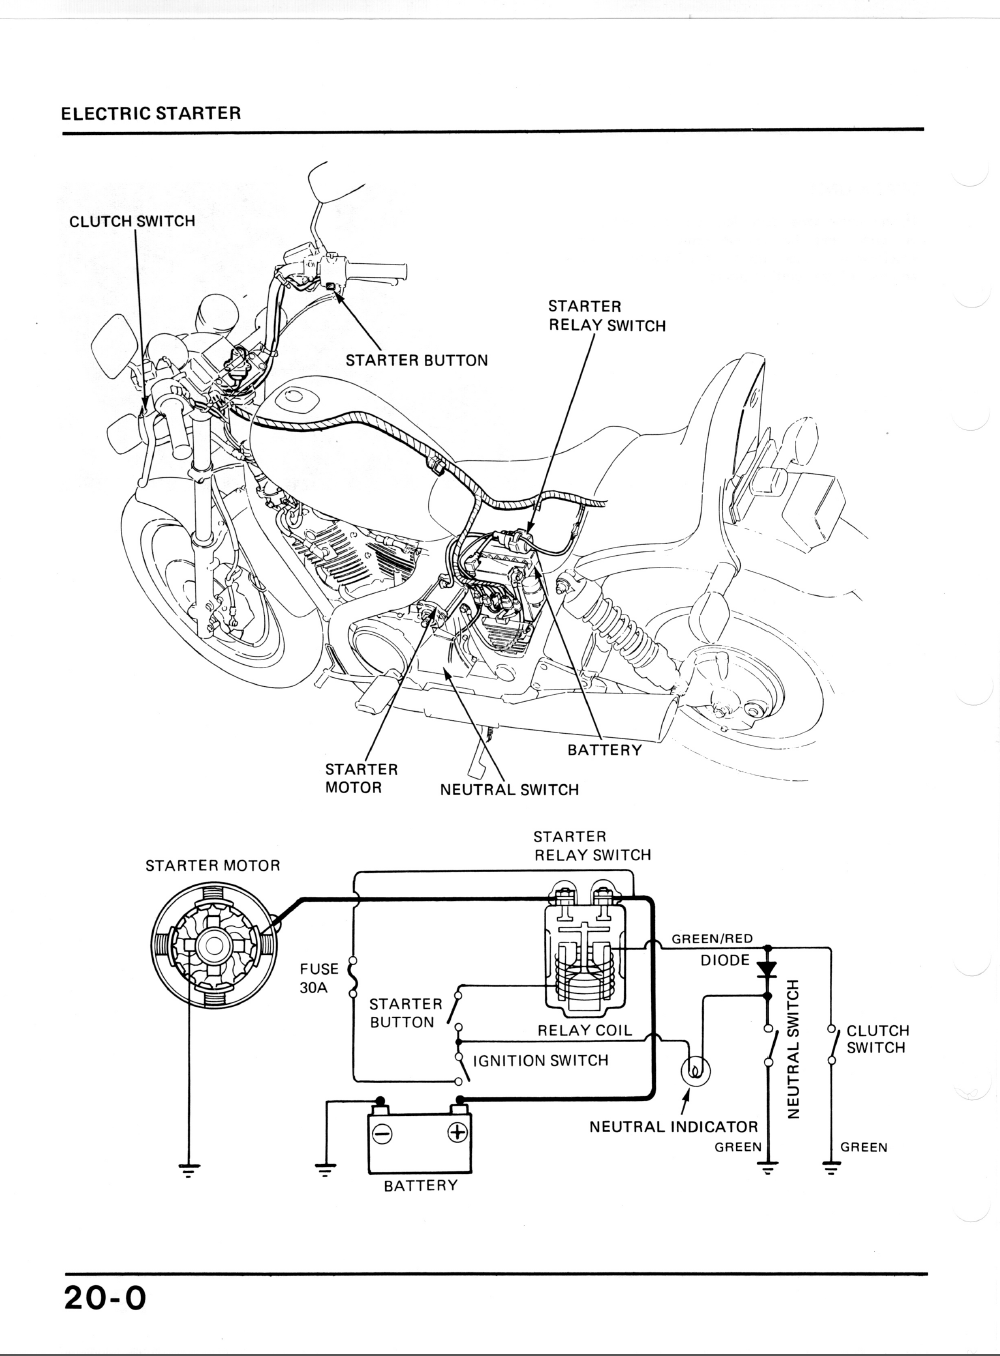 9266d1409799691 1984 honda shadow 700 electric stater 1984 honda shadow 700 1985 vt700c wiring diagram at eliteediting.co